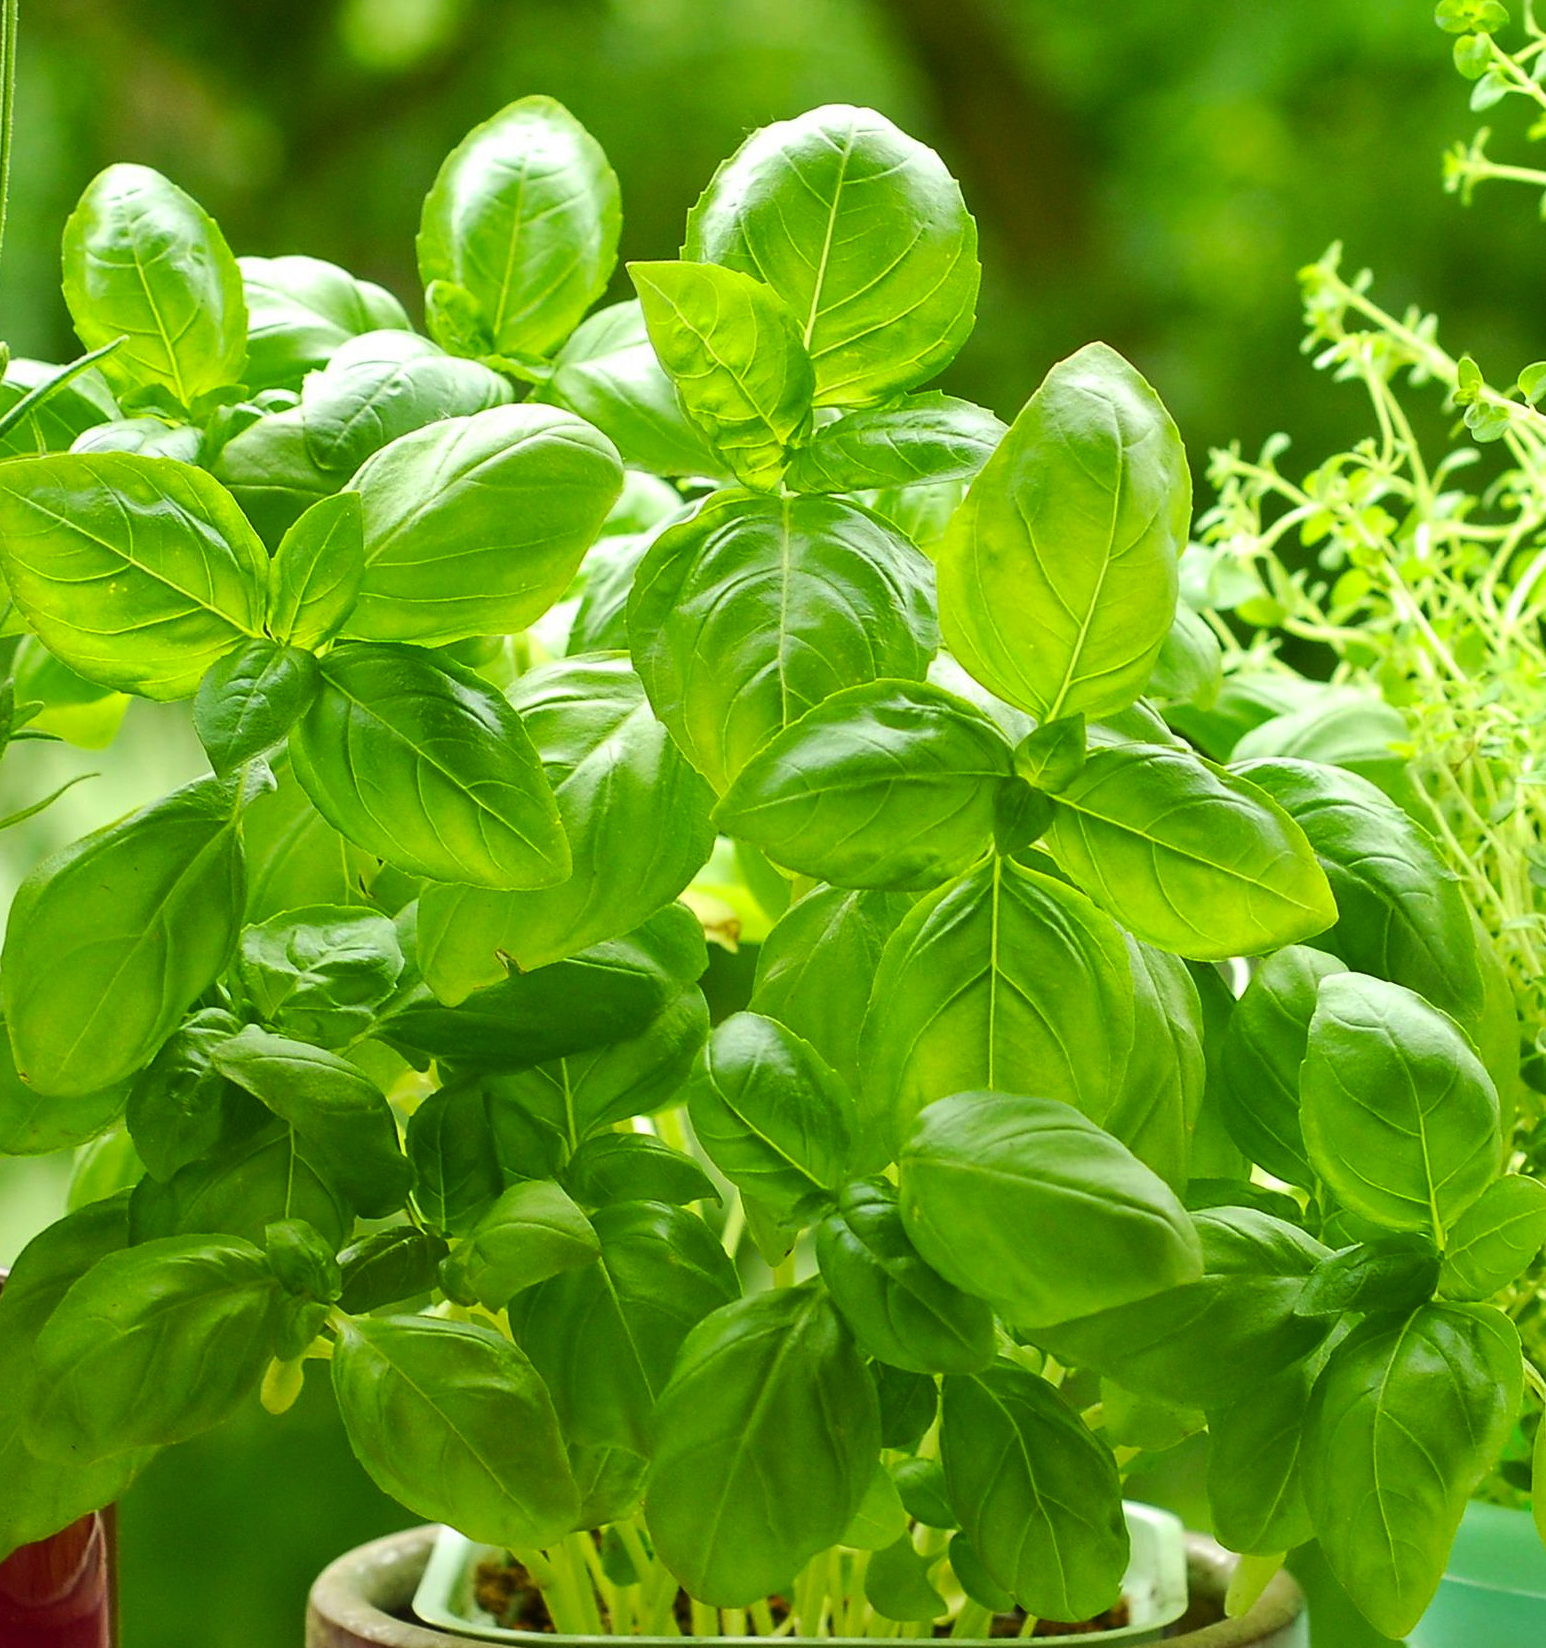 The Herb Series: Basil